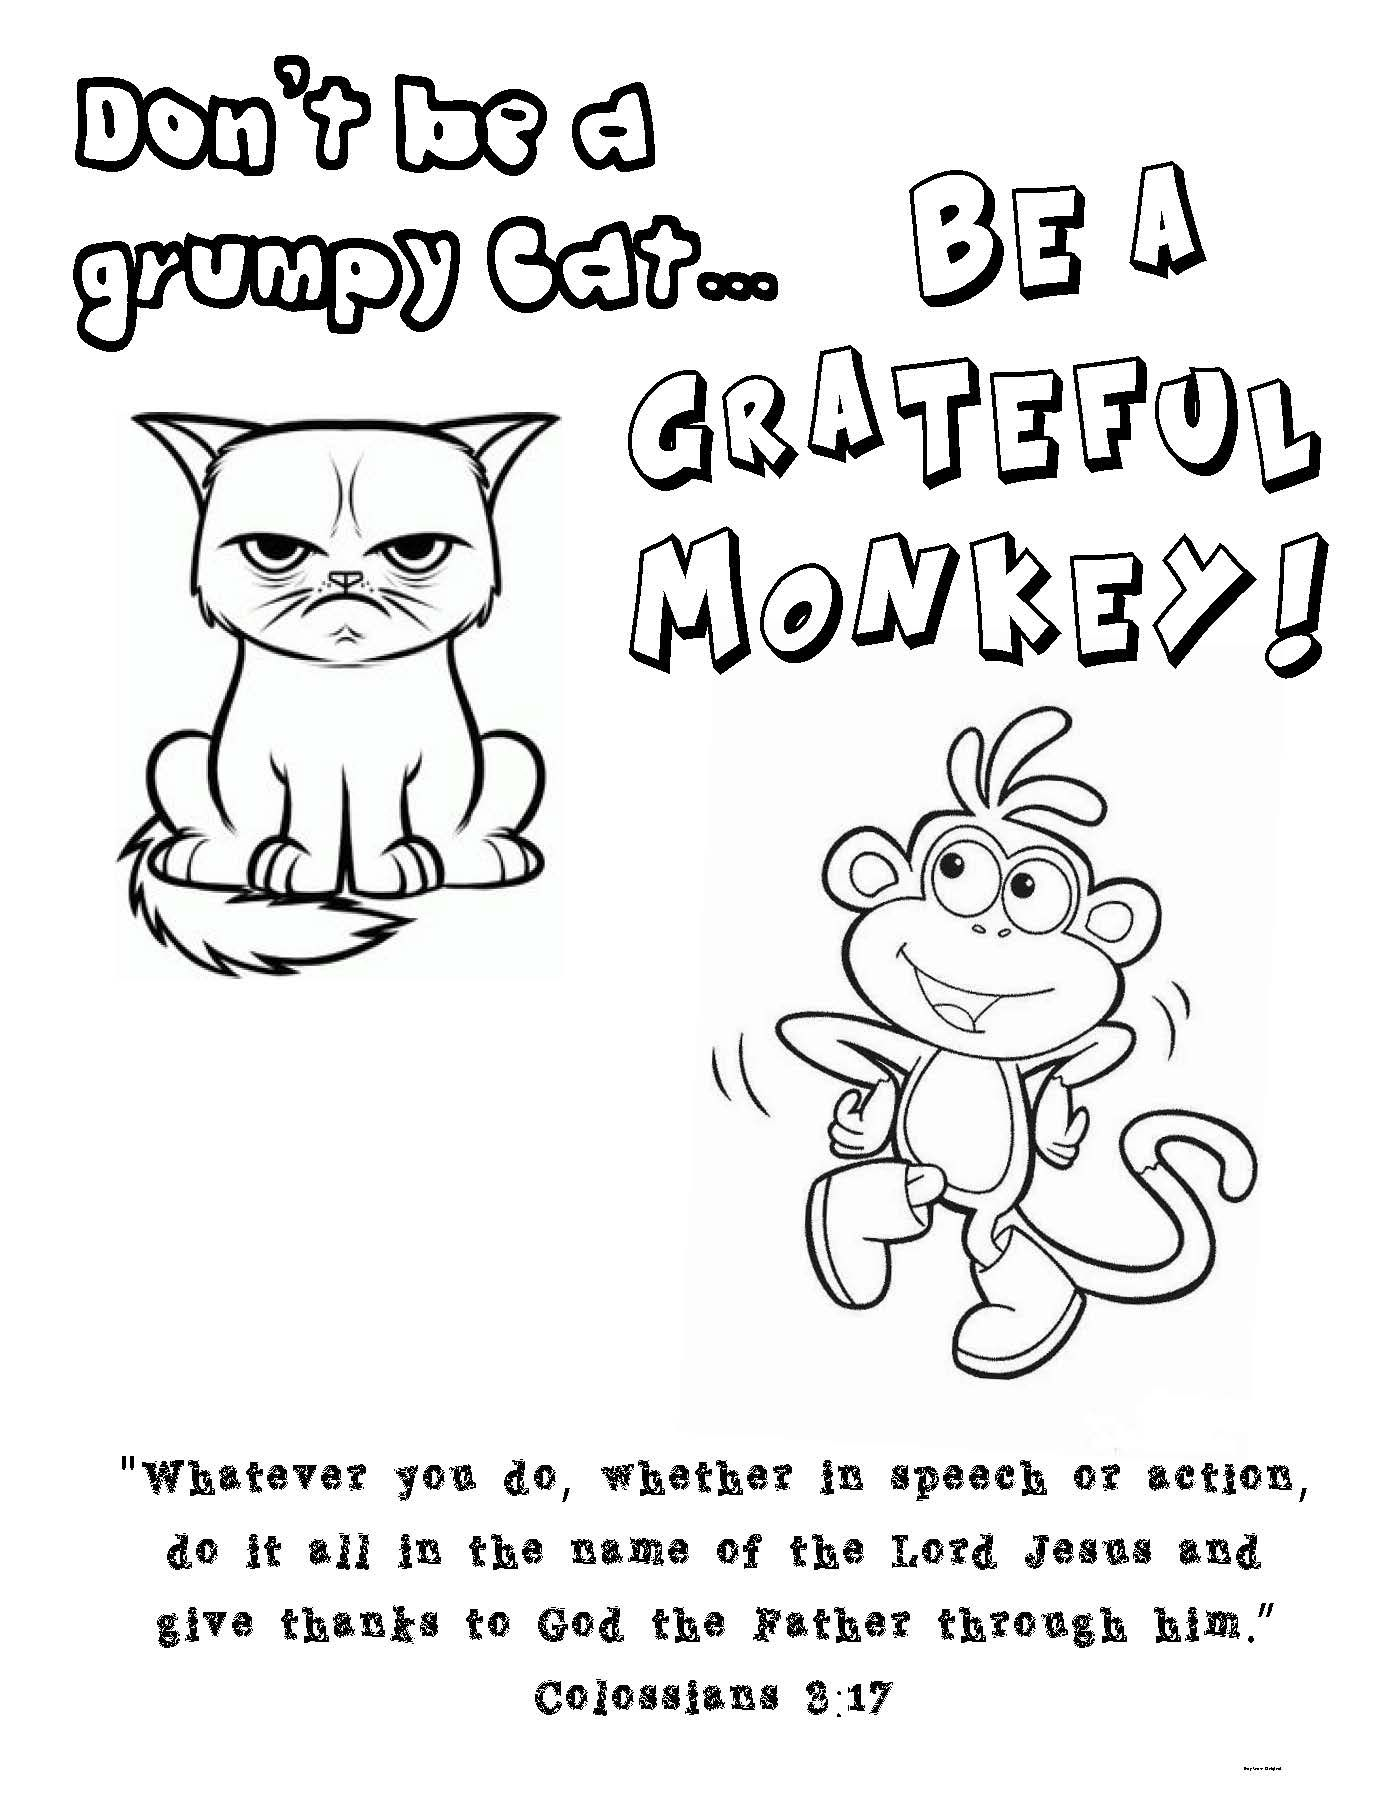 Colossians 317 Coloring Page Grumpy Cat Boots From Dora